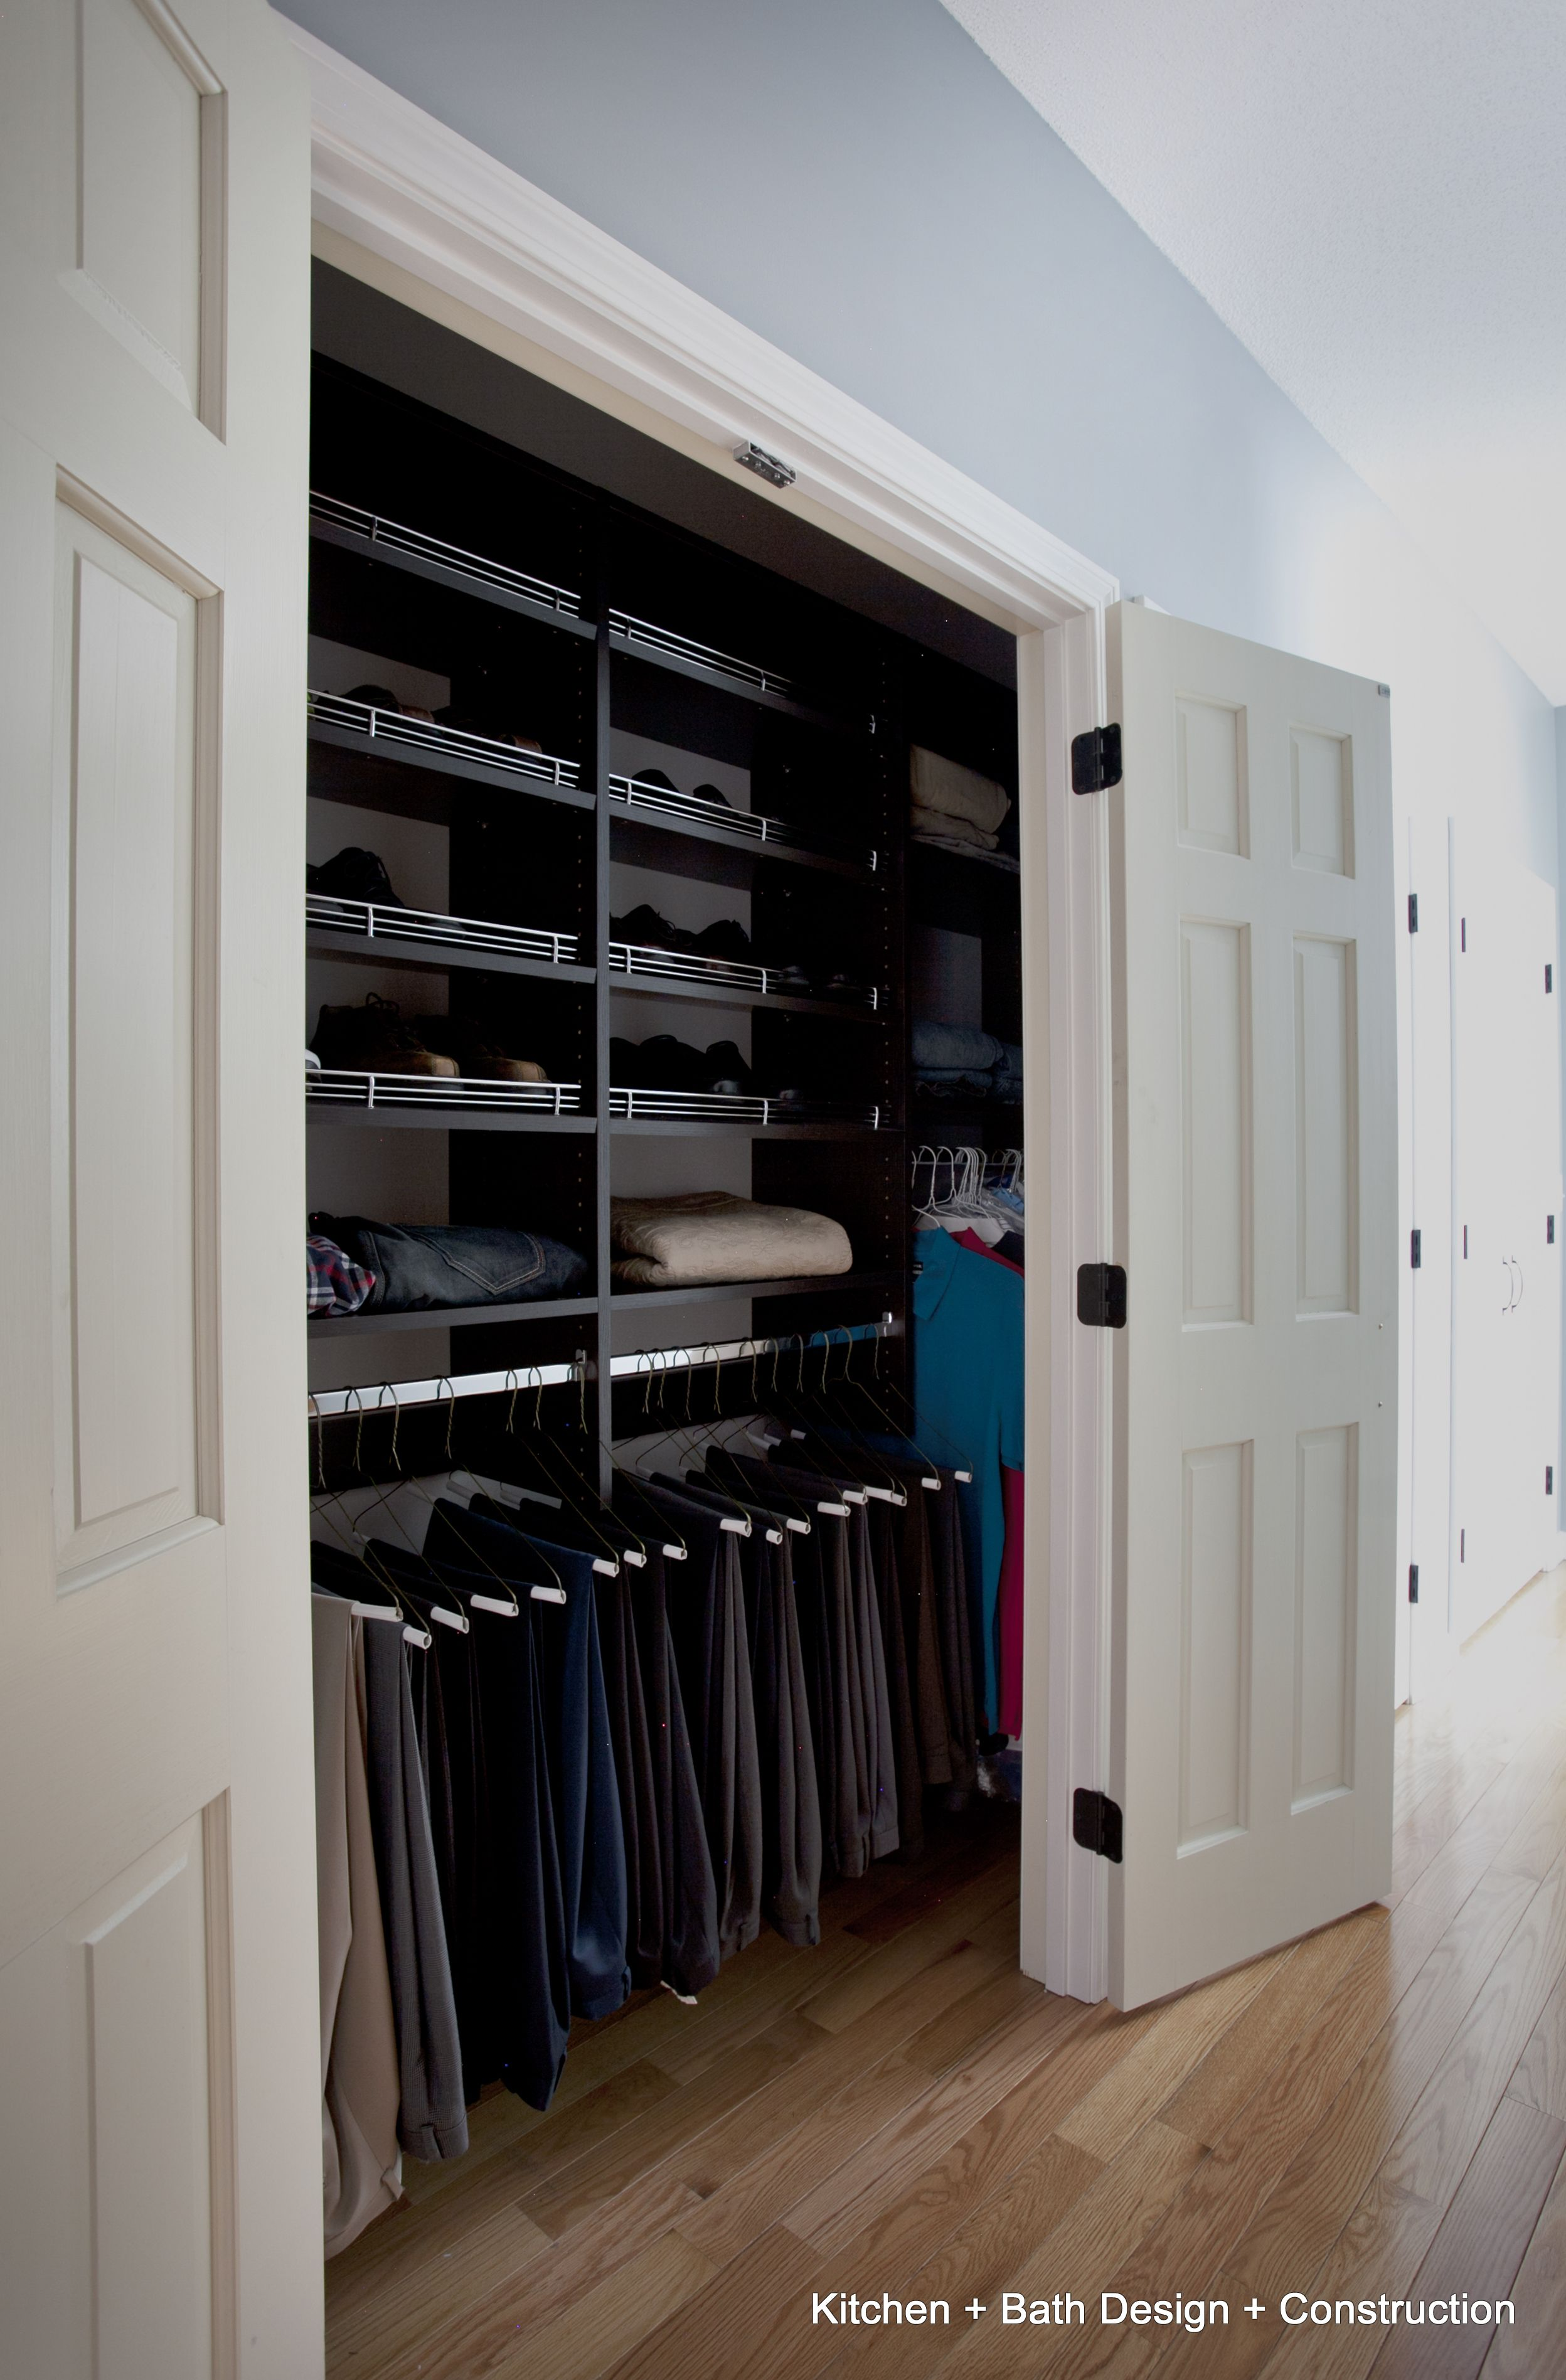 Superbe A Closet Redesign In A Master Bedroom Suite. The Built Ins Were Designed  And Installed To Coordinate With The Other Cabinetry In This Beautiful  Space.